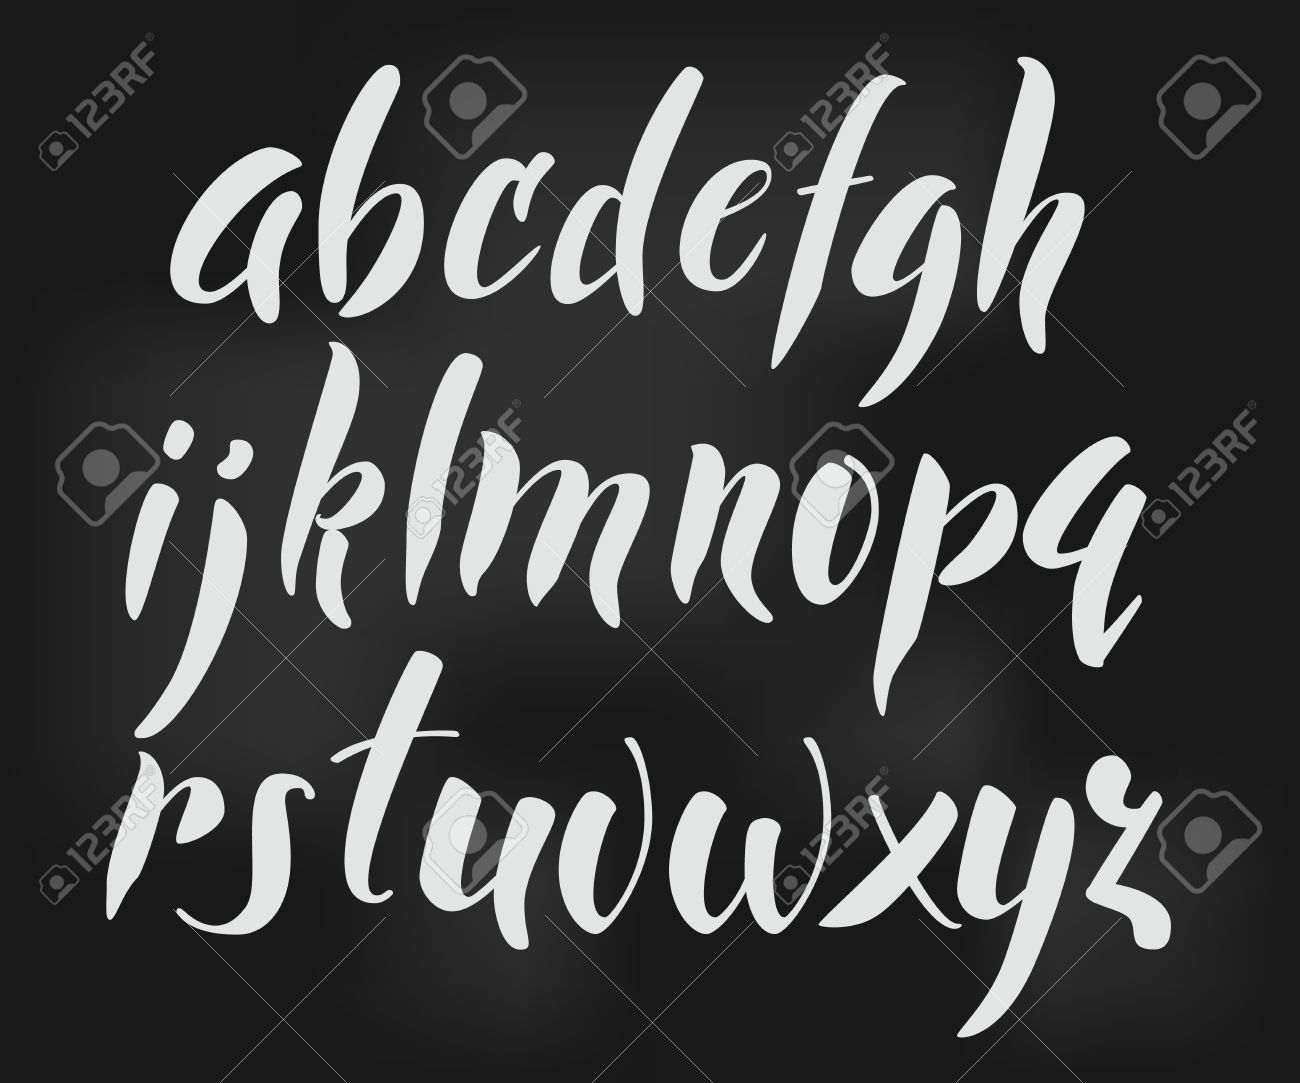 Brush style vector alphabet calligraphy low case letters cursive font. Calligraphy alphabet. Cute calligraphy letters. For expressive brush retro style lettering design. Isolated letter elements - 50002972